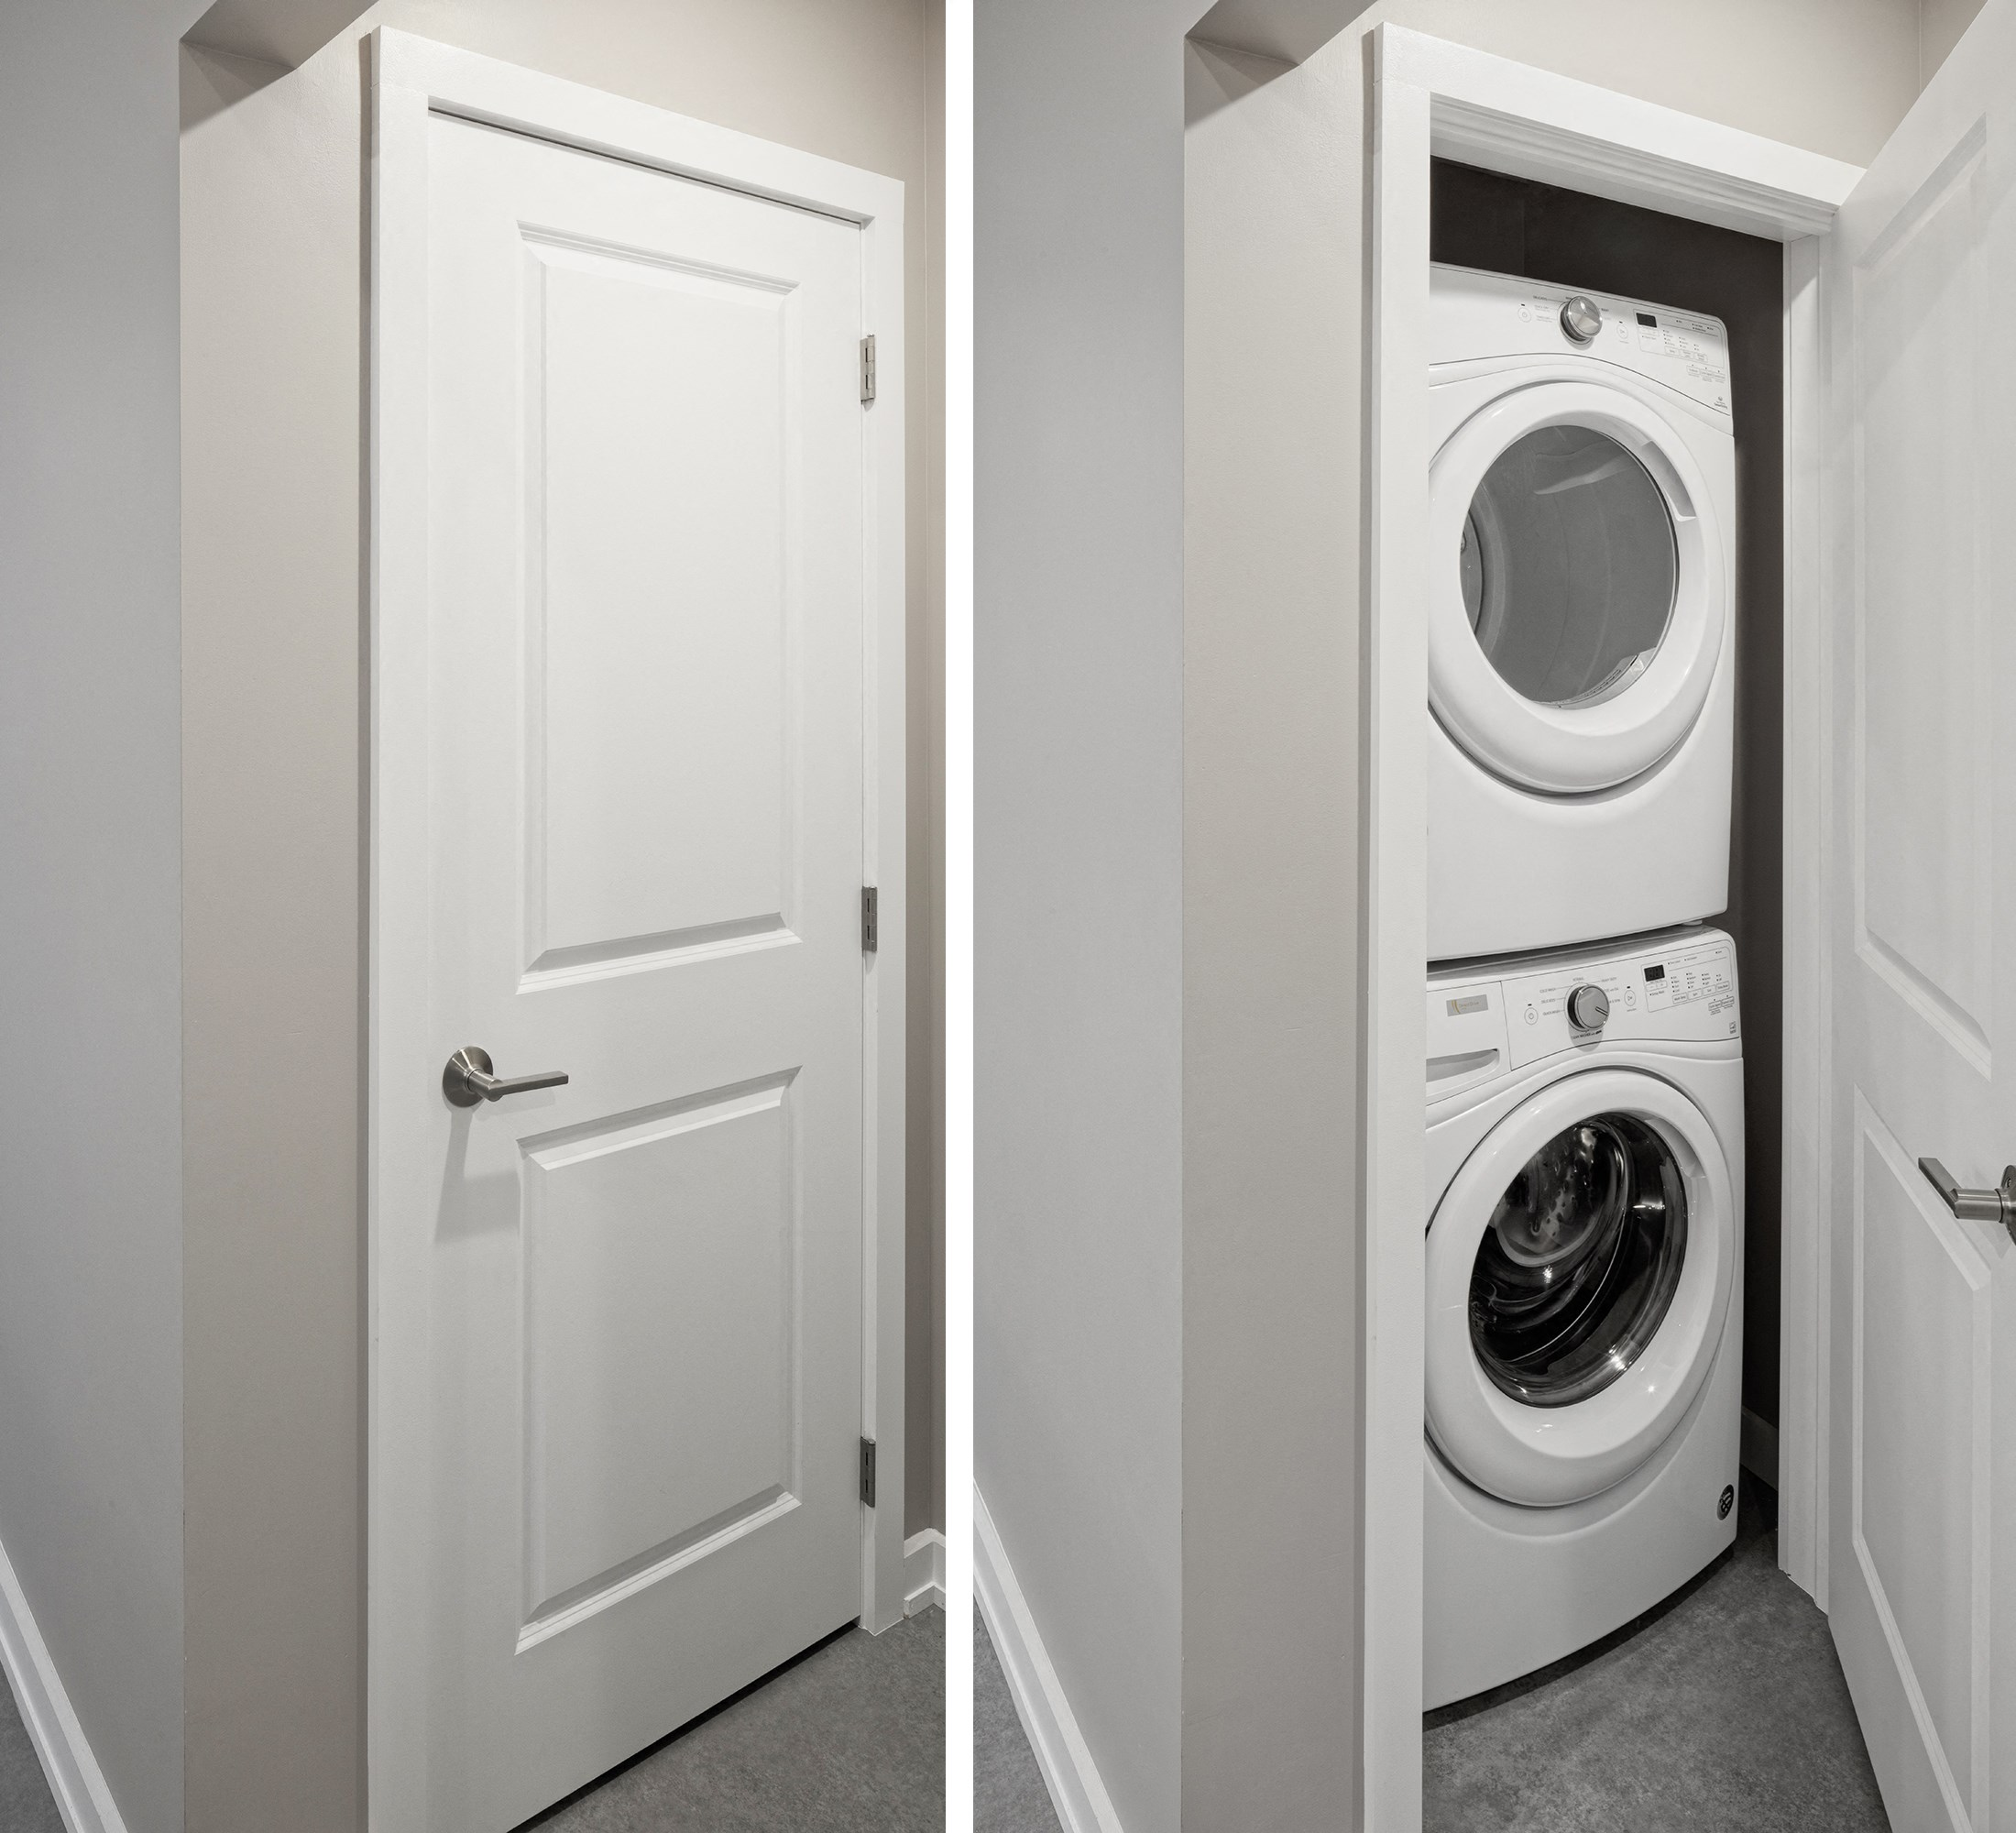 Full-Size In-Unit Washer/Dryers at The News, New York